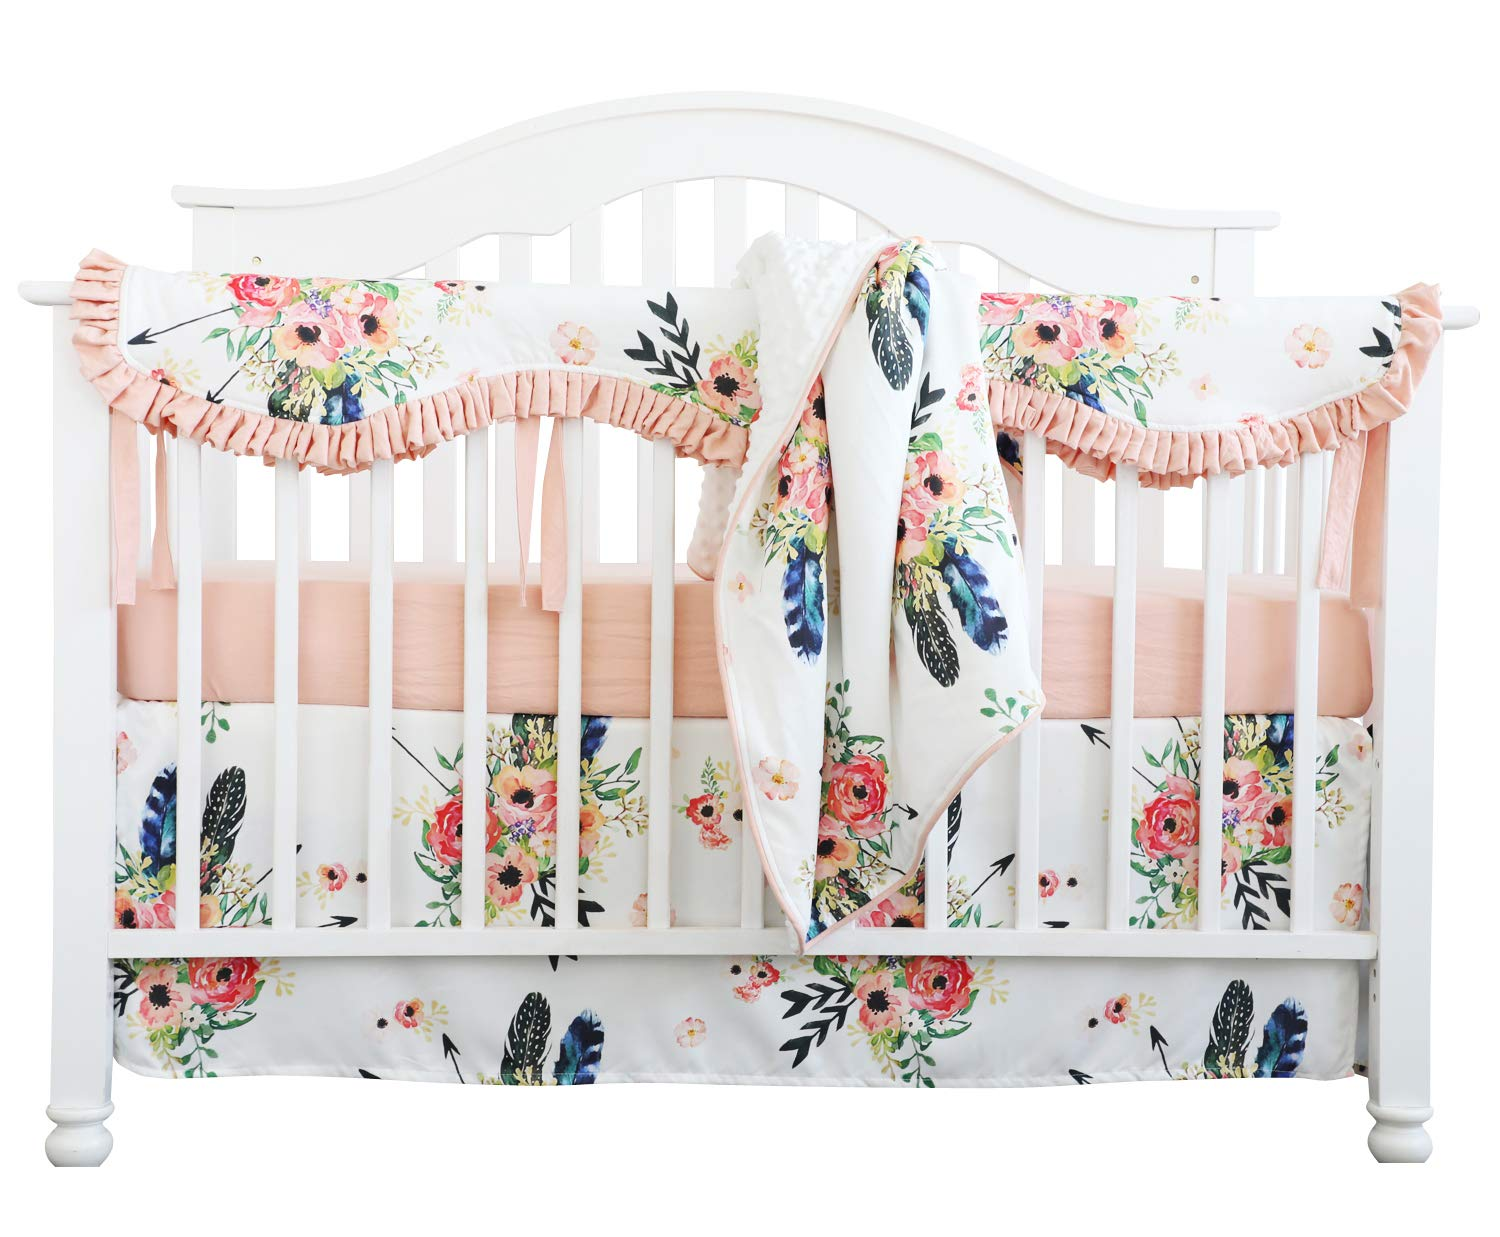 Crib Rail Guard Set Boho Floral Nursery Baby Bedding Ruffled Crib Skirt Crib Rail Cover Set (Ruffle Feather Floral) by Sahaler